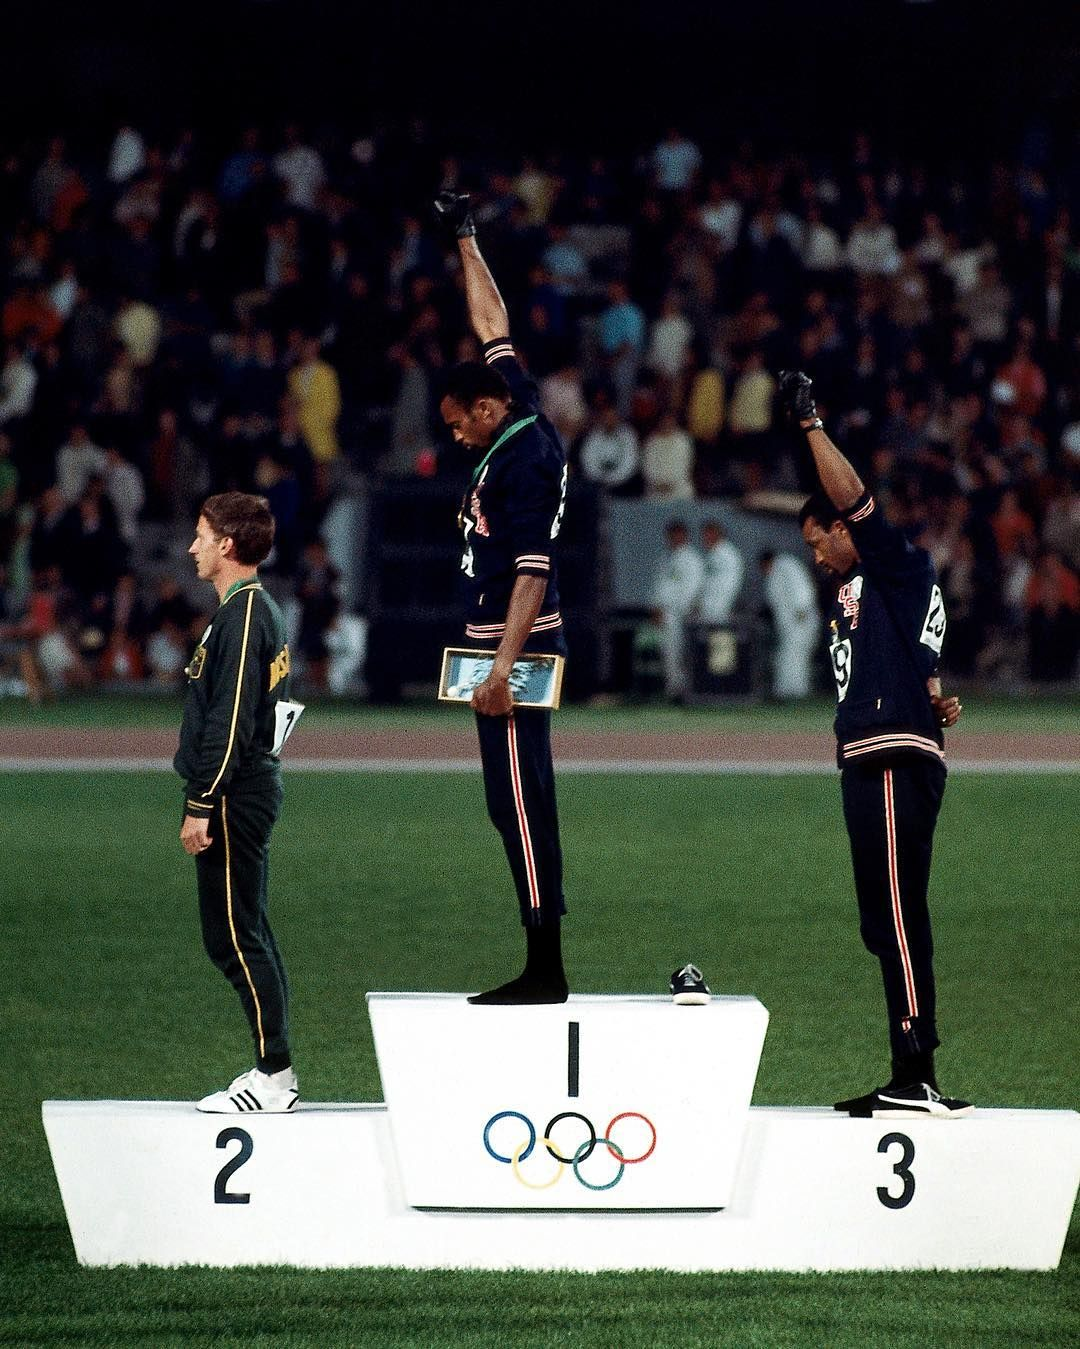 Australia Peter Norman (silver), USA Tommie Smith (gold